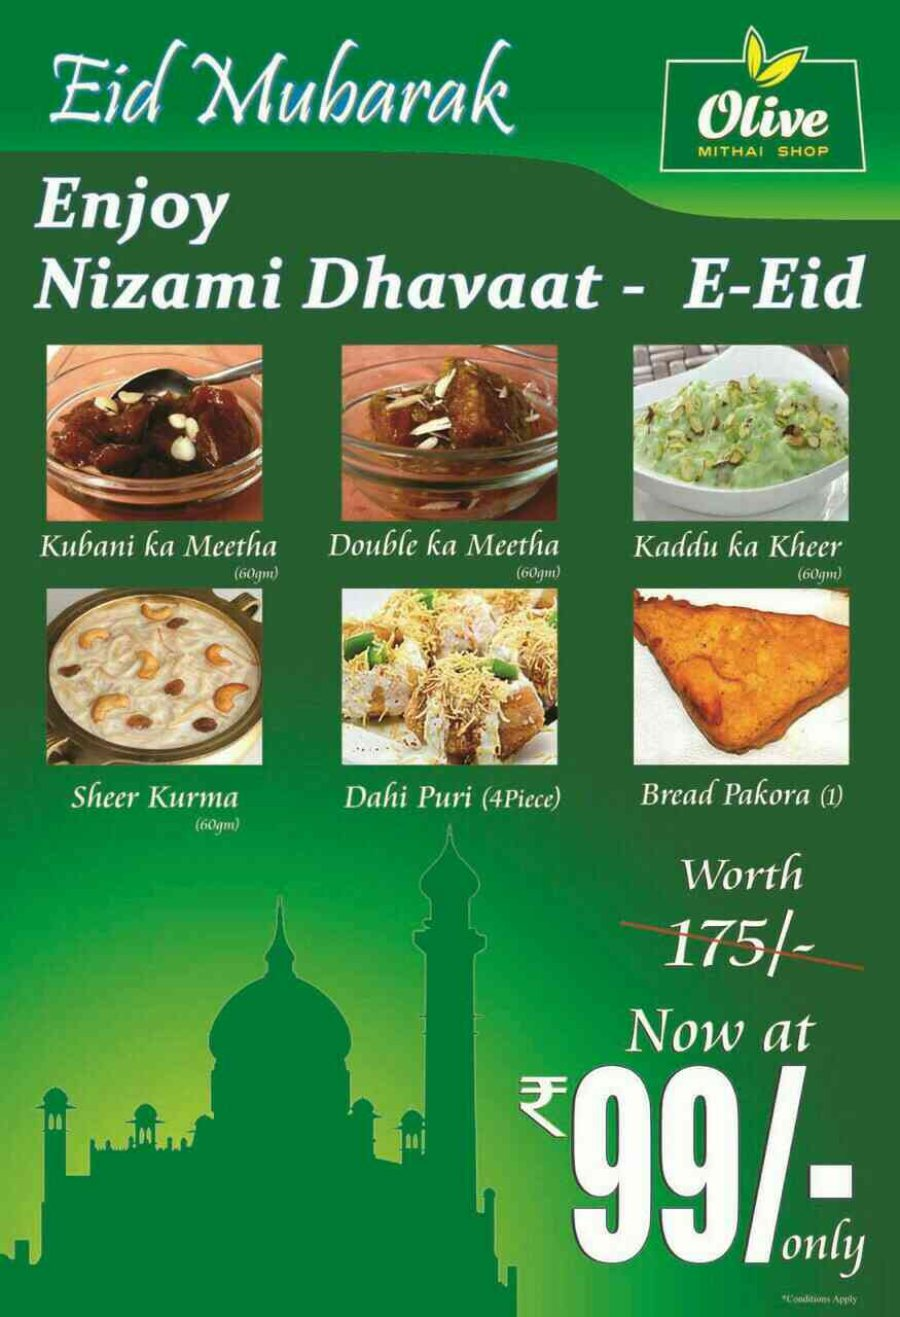 Enjoy the Nizami Dhavath with Olive Sweets exiting combo offers are available for this EID